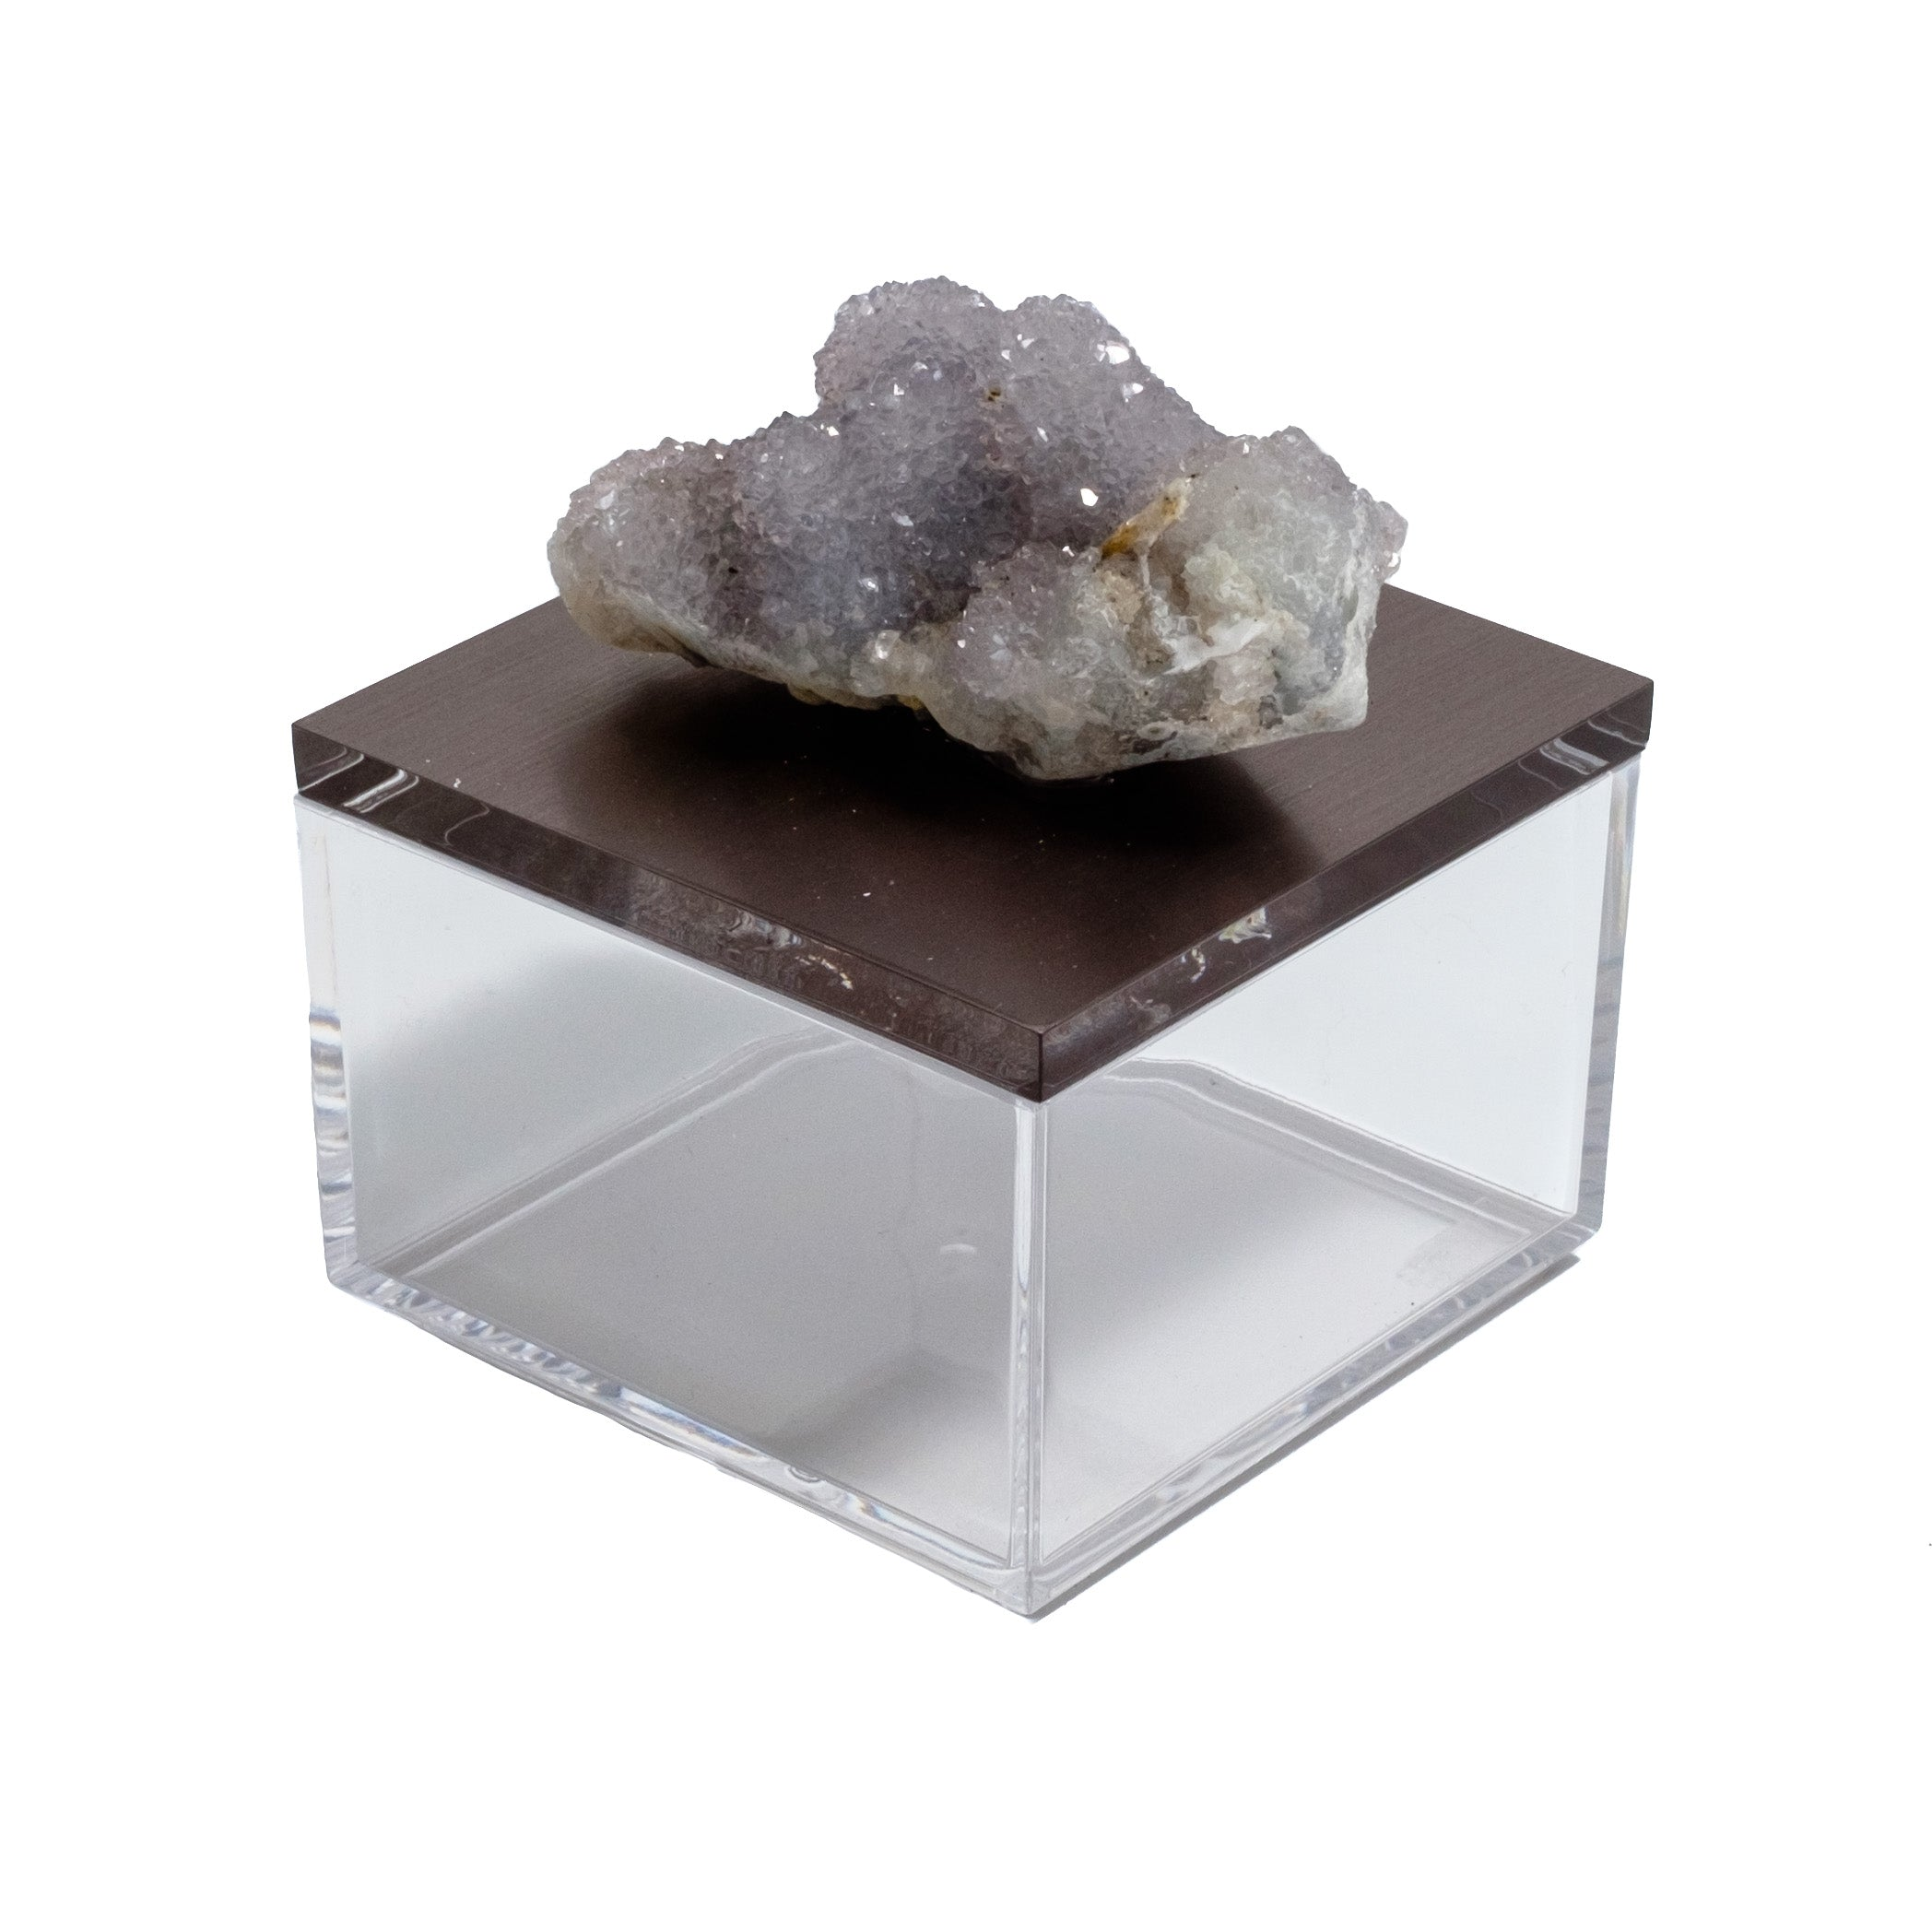 Gemstone box with spirit quartz by Mapleton Drive